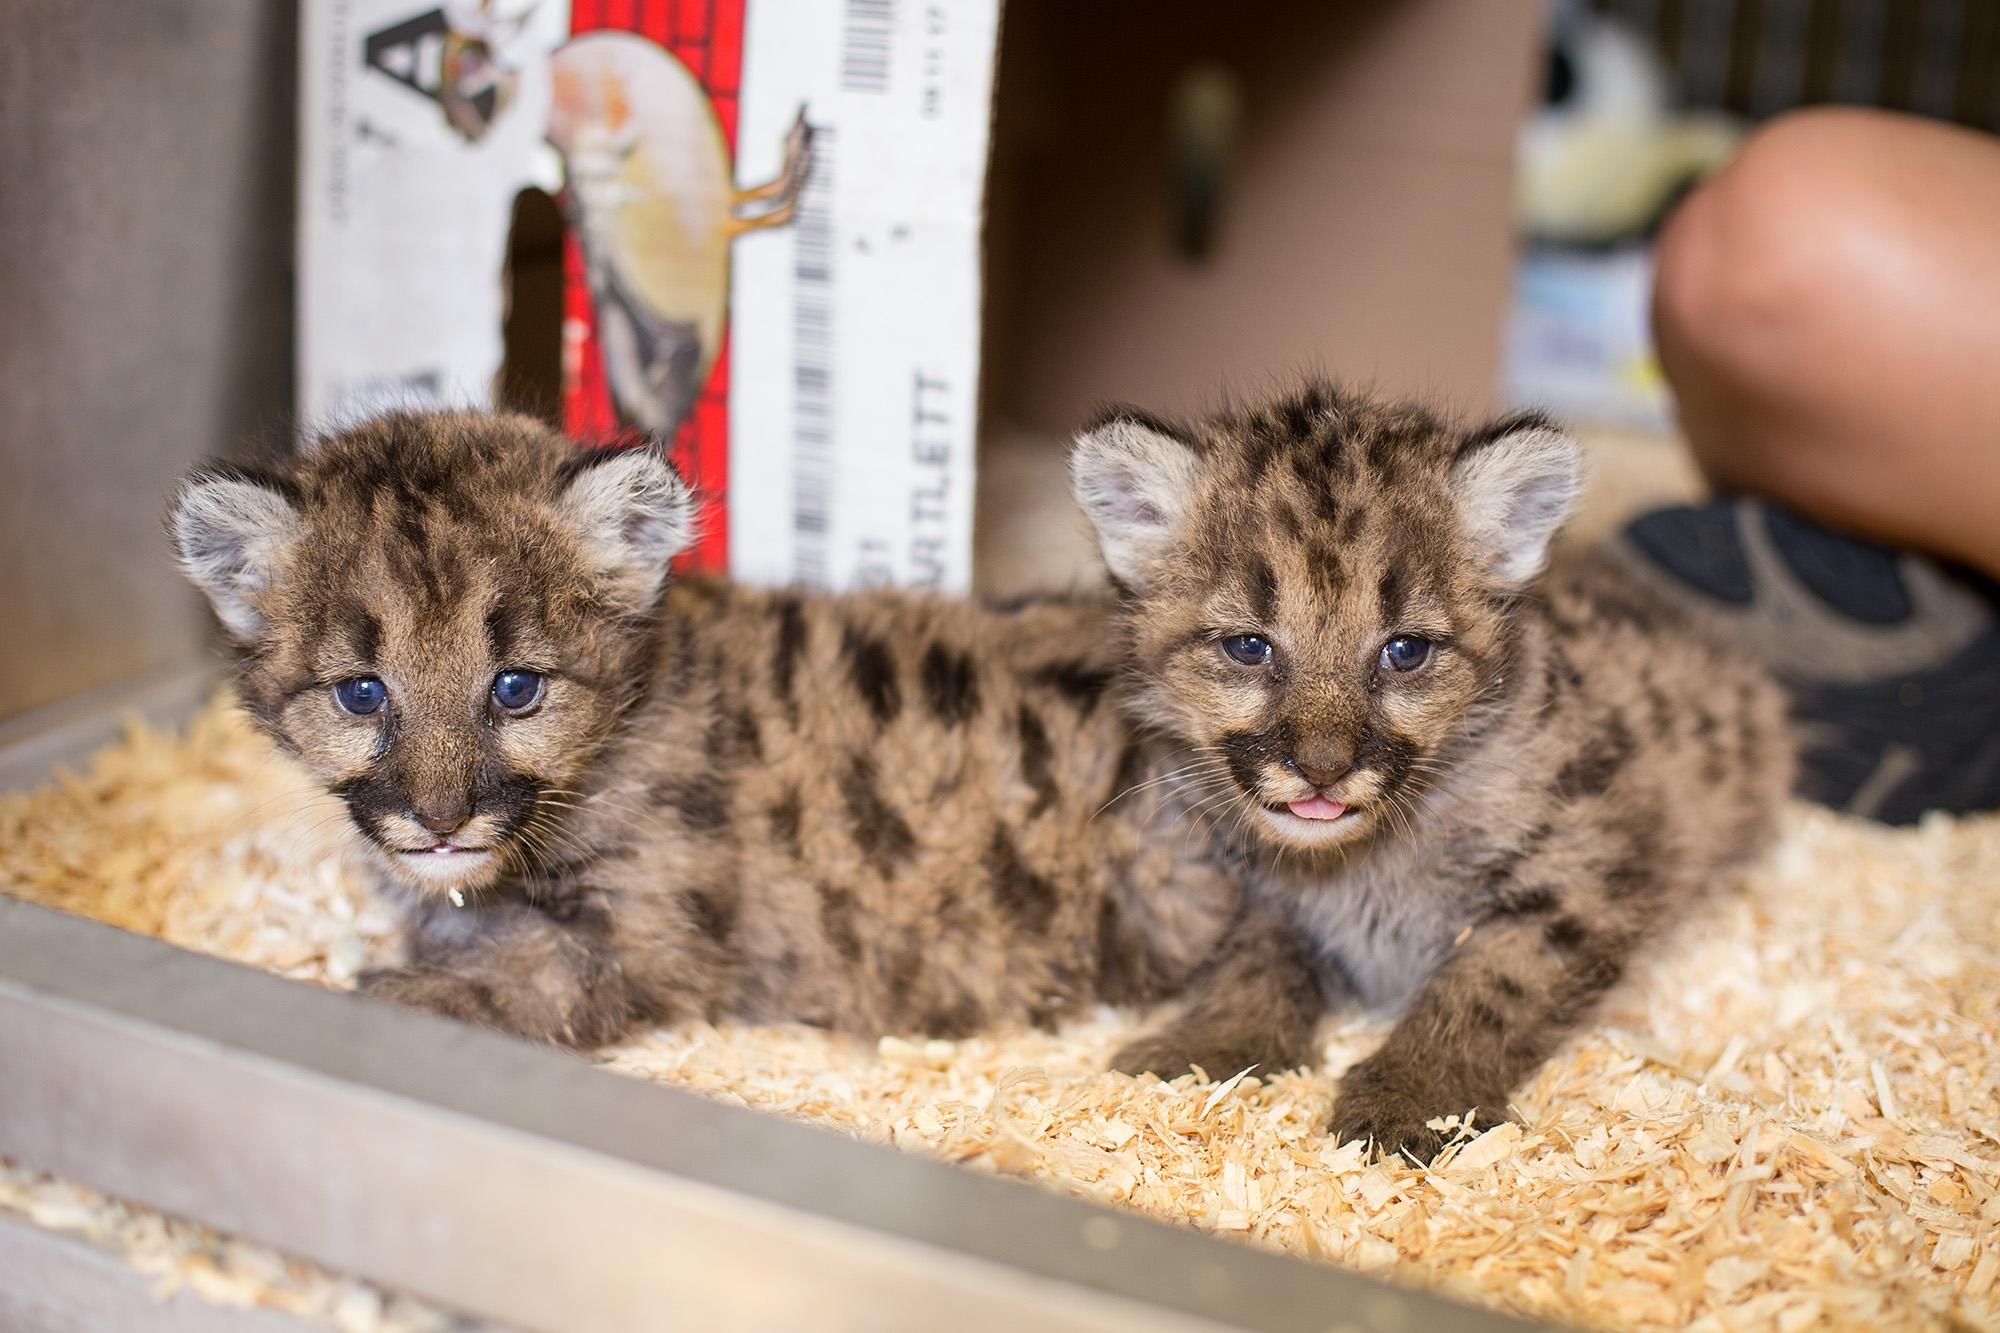 Three female cougar cubs are making a new home at the Toledo Zoo in Ohio after the Washington state Department of Fish and Wildlife reached out to find the cubs a new home after the death of their mothers. (Photo courtesy Toledo Zoo){&amp;nbsp;}{&amp;nbsp;}<p></p>